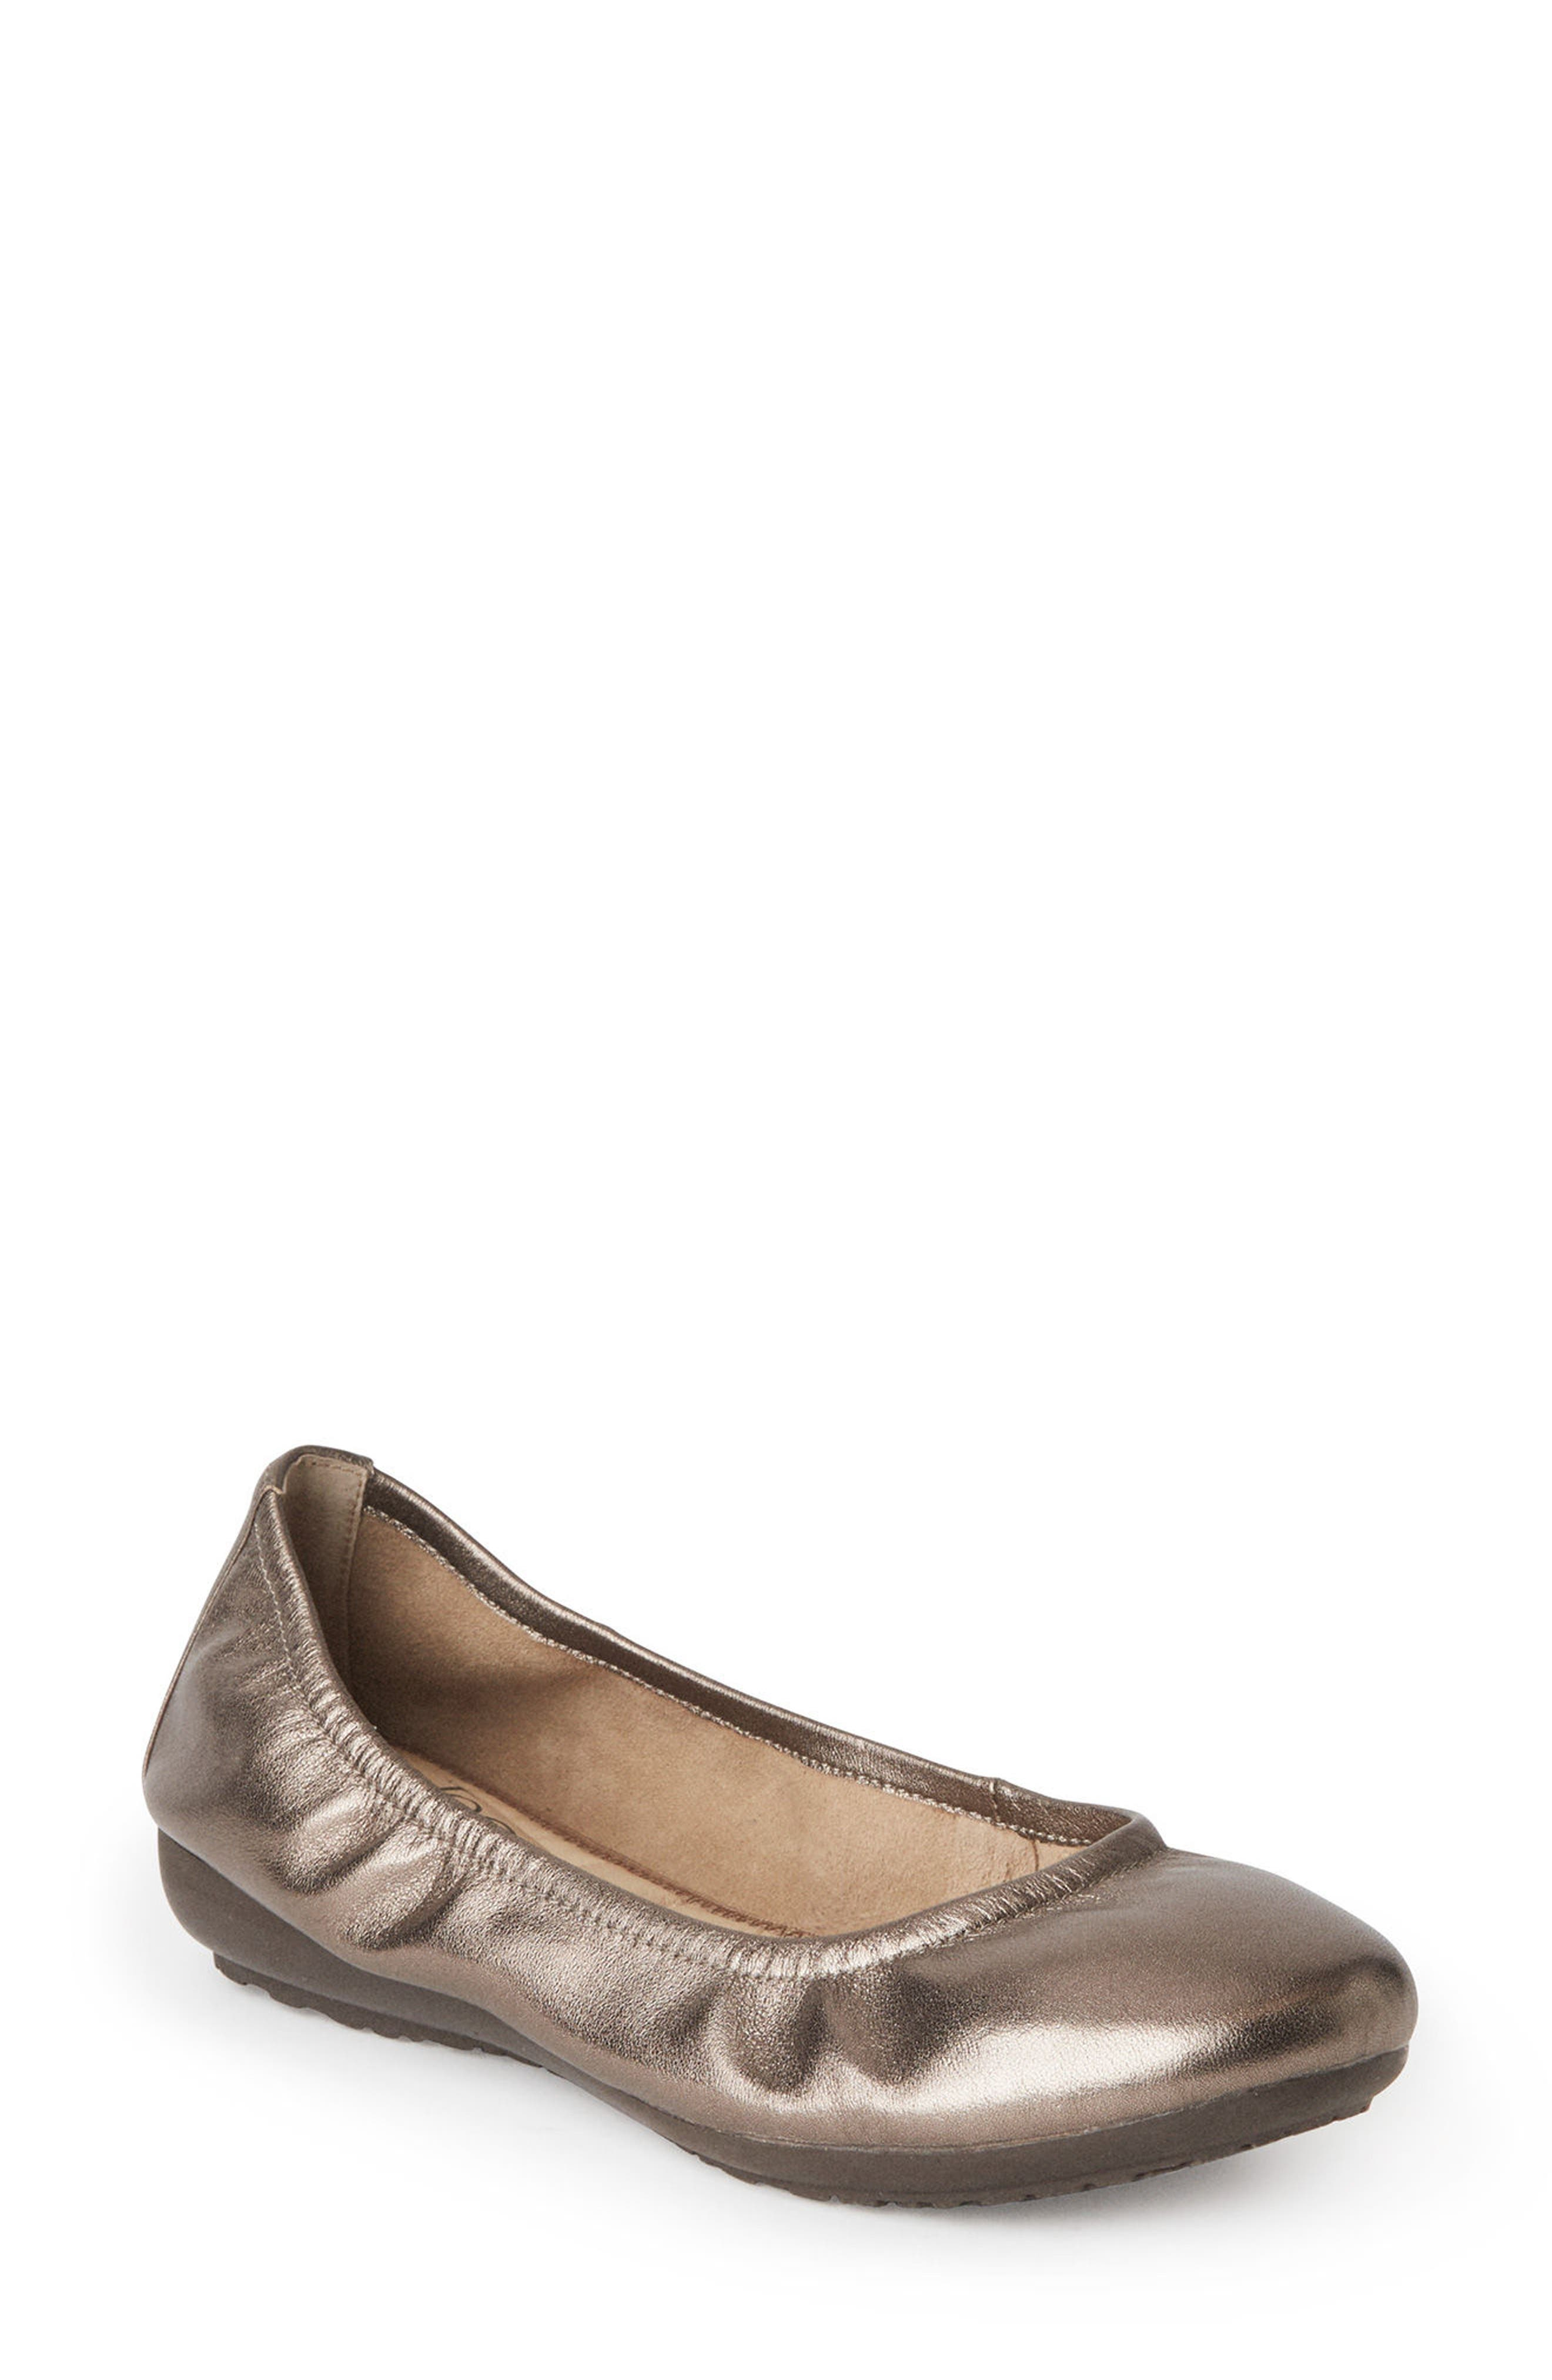 Janell Sliver Wedge Flat,                             Main thumbnail 1, color,                             Mink Metallic Leather